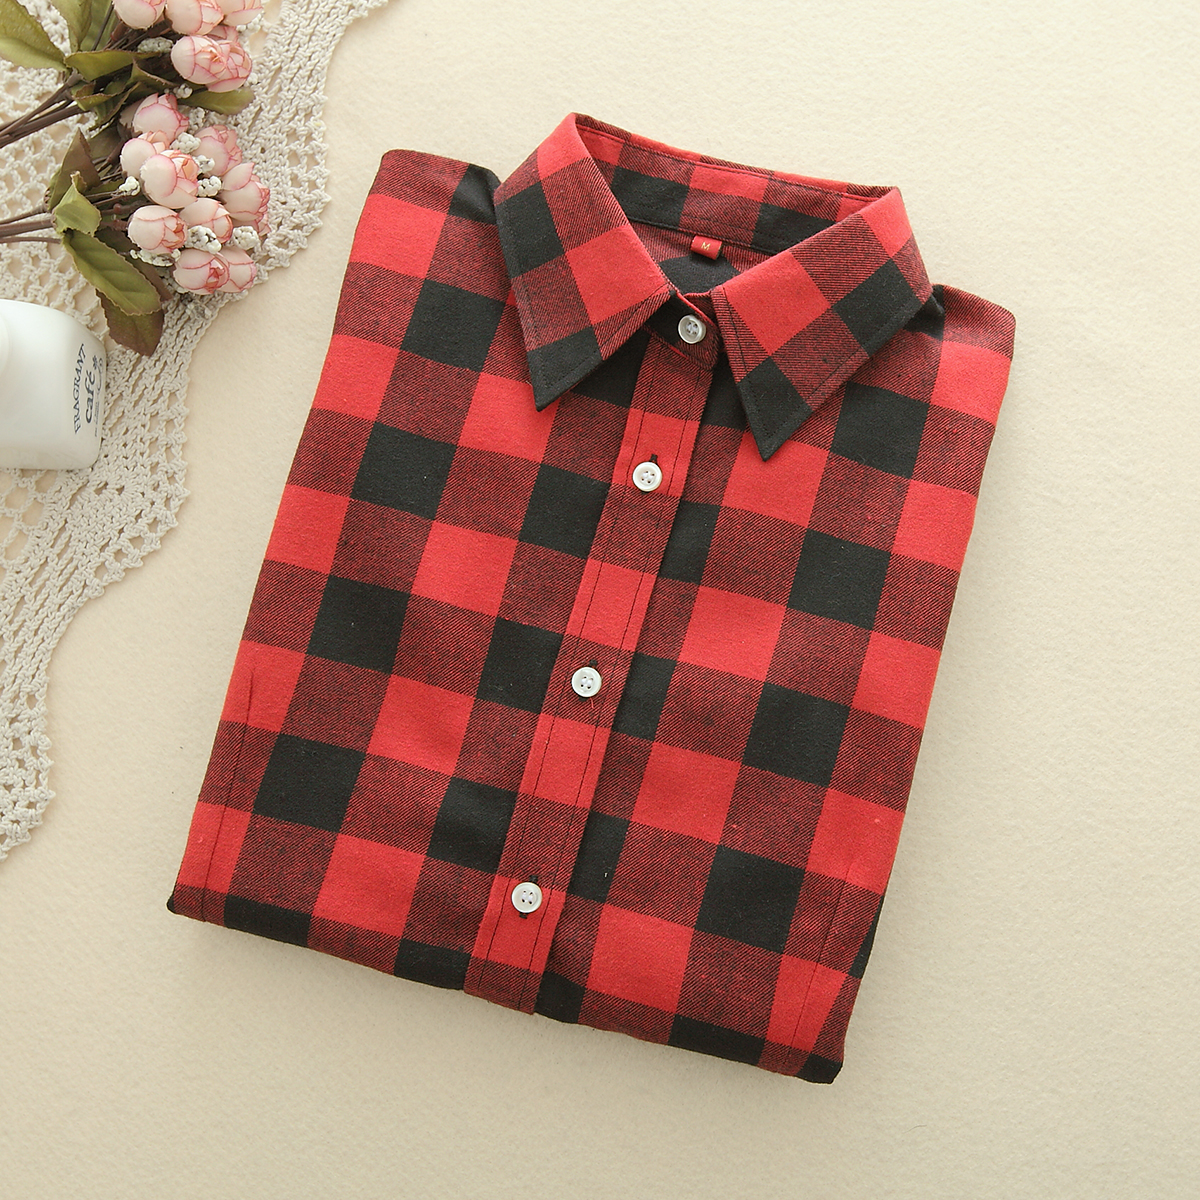 2019 Fashion Plaid Shirt Kvinne College Style Dame Bluser Langermet Flannel Shirt Plus Size Cotton Blusas Office Topper